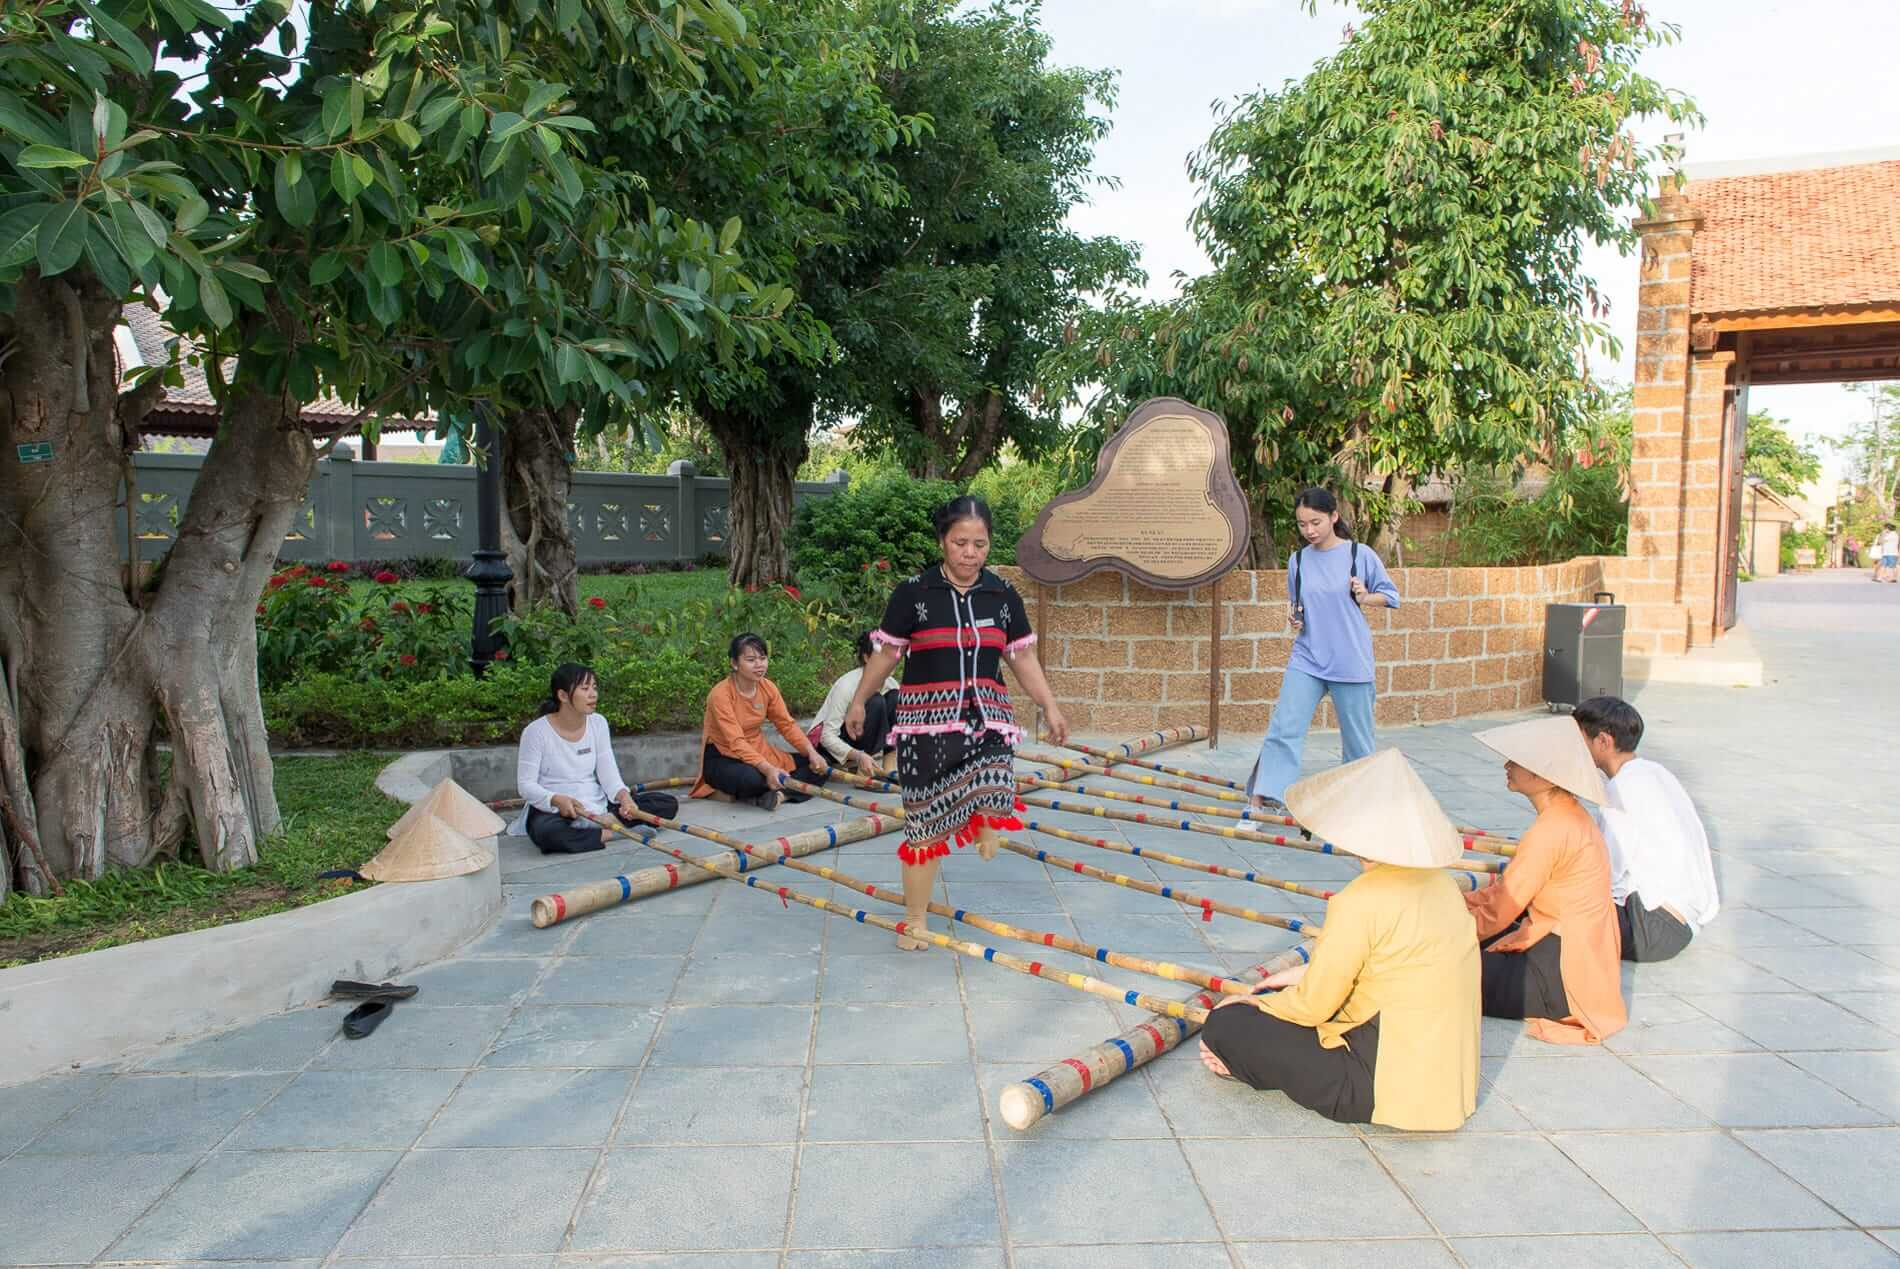 Traditional Vietnamese games